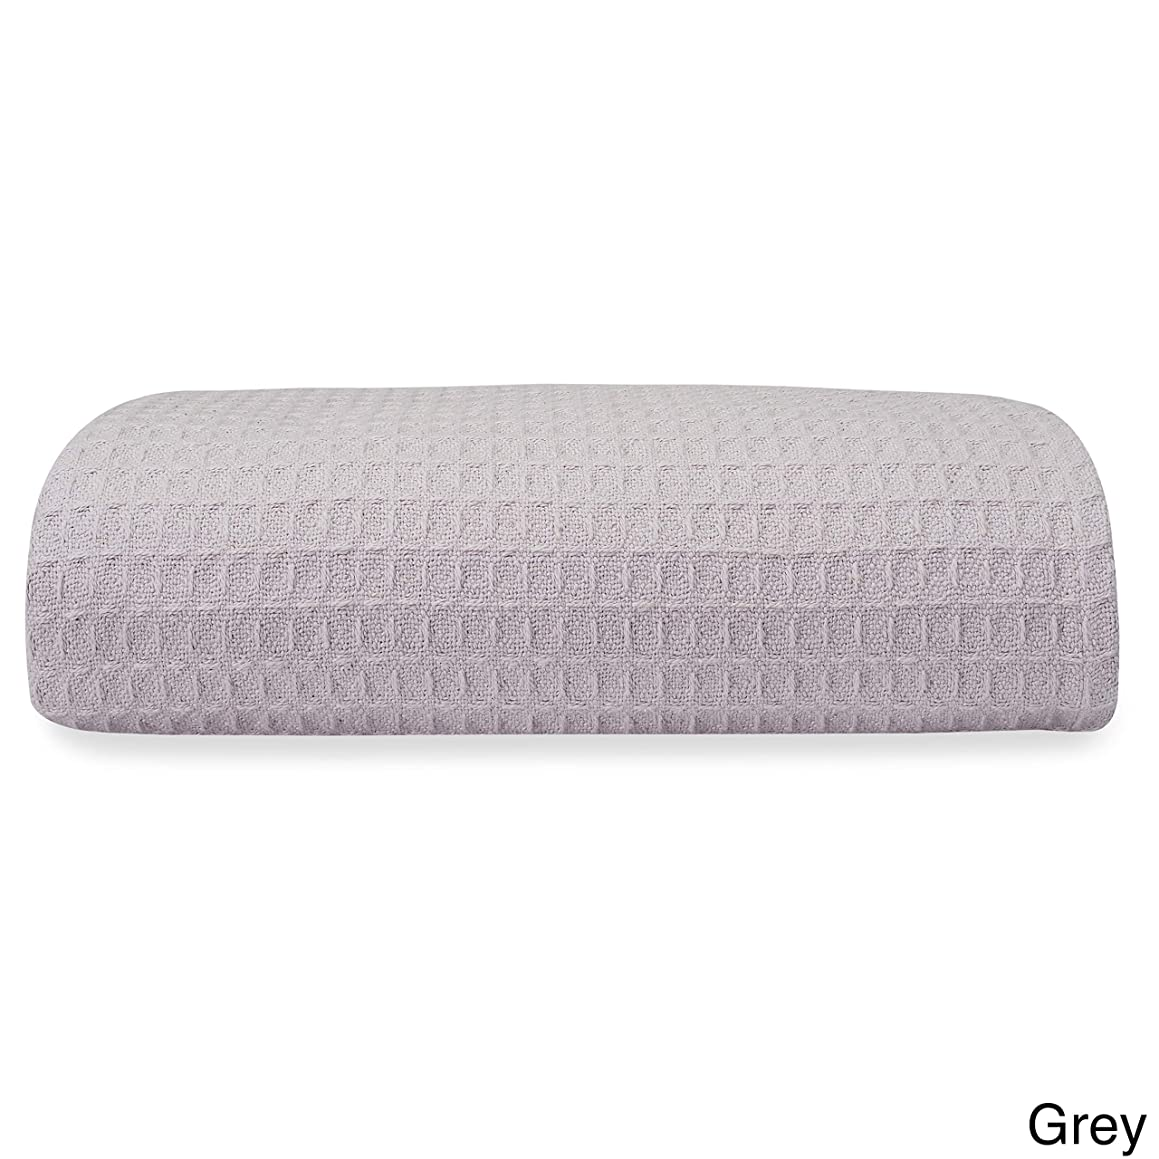 Single Piece King Grey Woven Waffle Weave Blanket, Solid Color Pattern, Knit, Cotton Material, Contemporary Classic Style, Pliable & Comfortable, Self-Binding Edging, Machine Washable, Charcoal